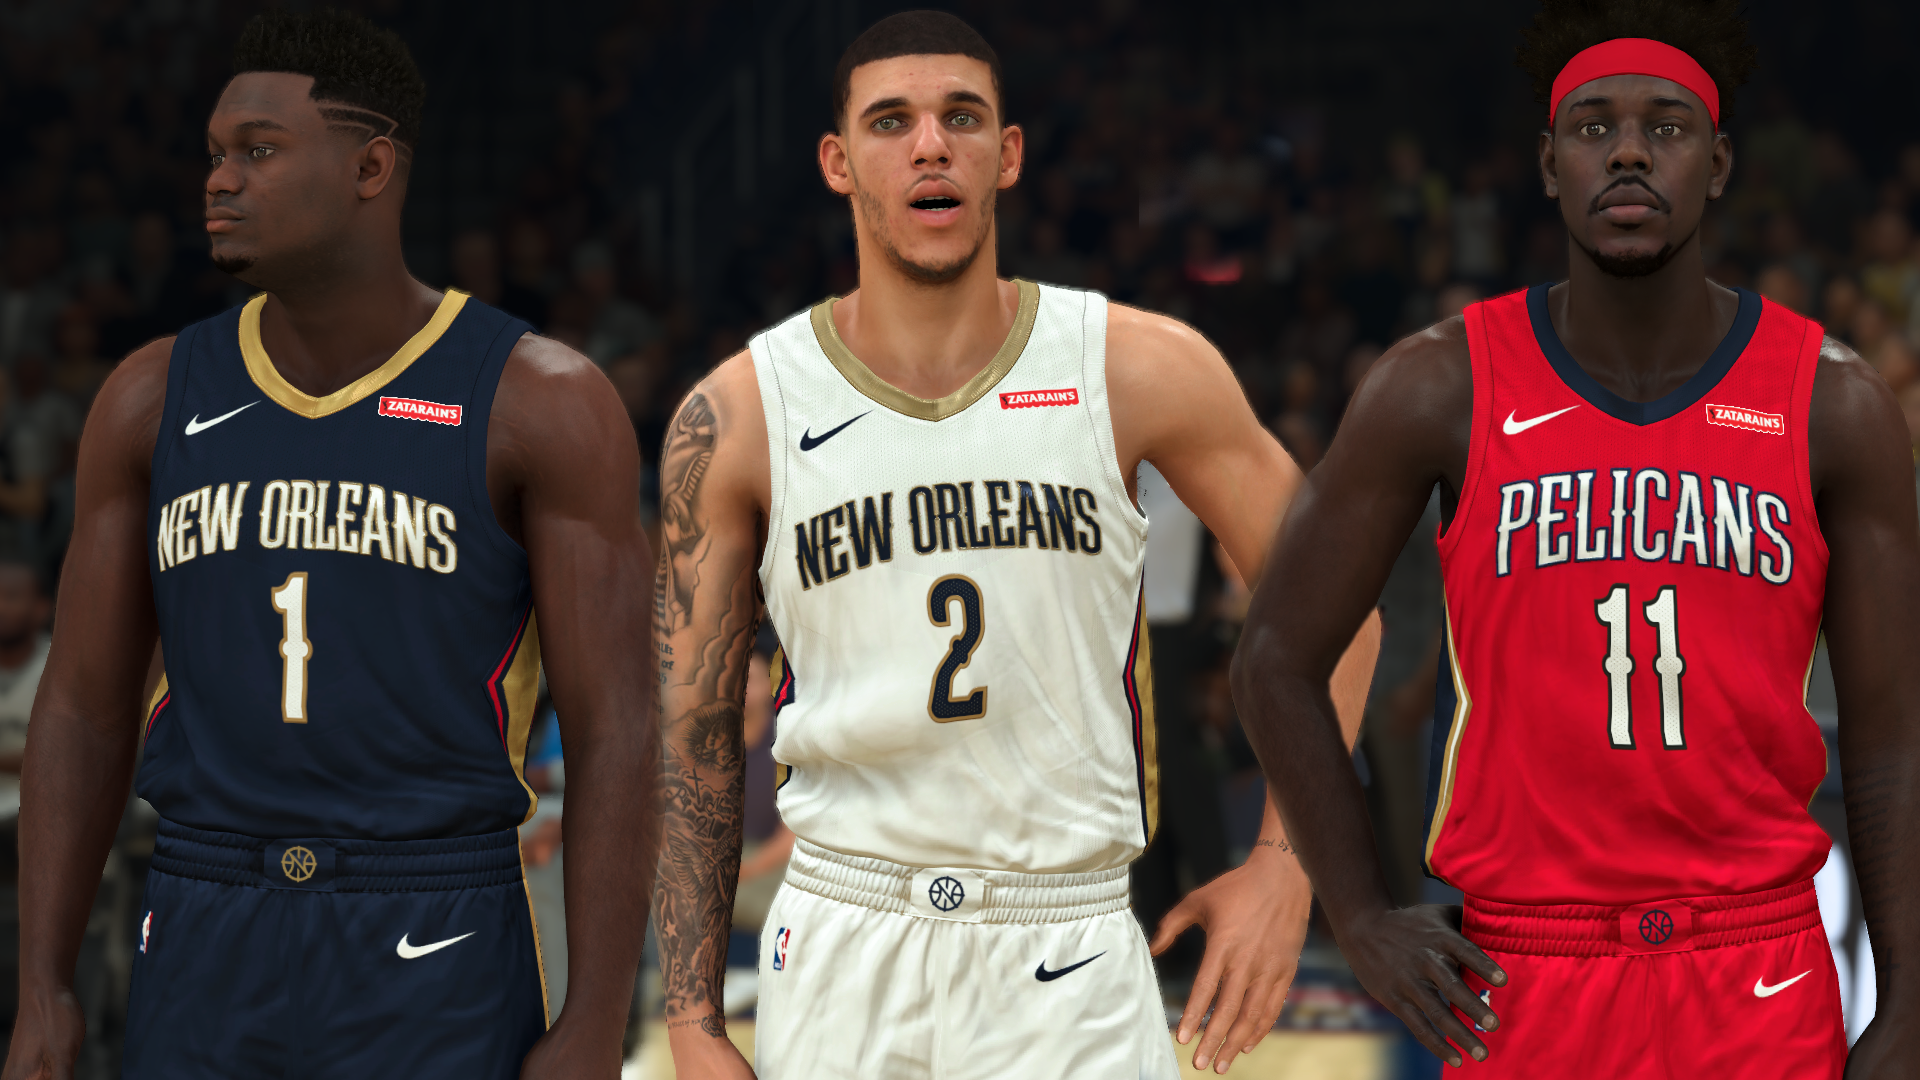 New Orleans Pelicans Jersey (pinoy21)